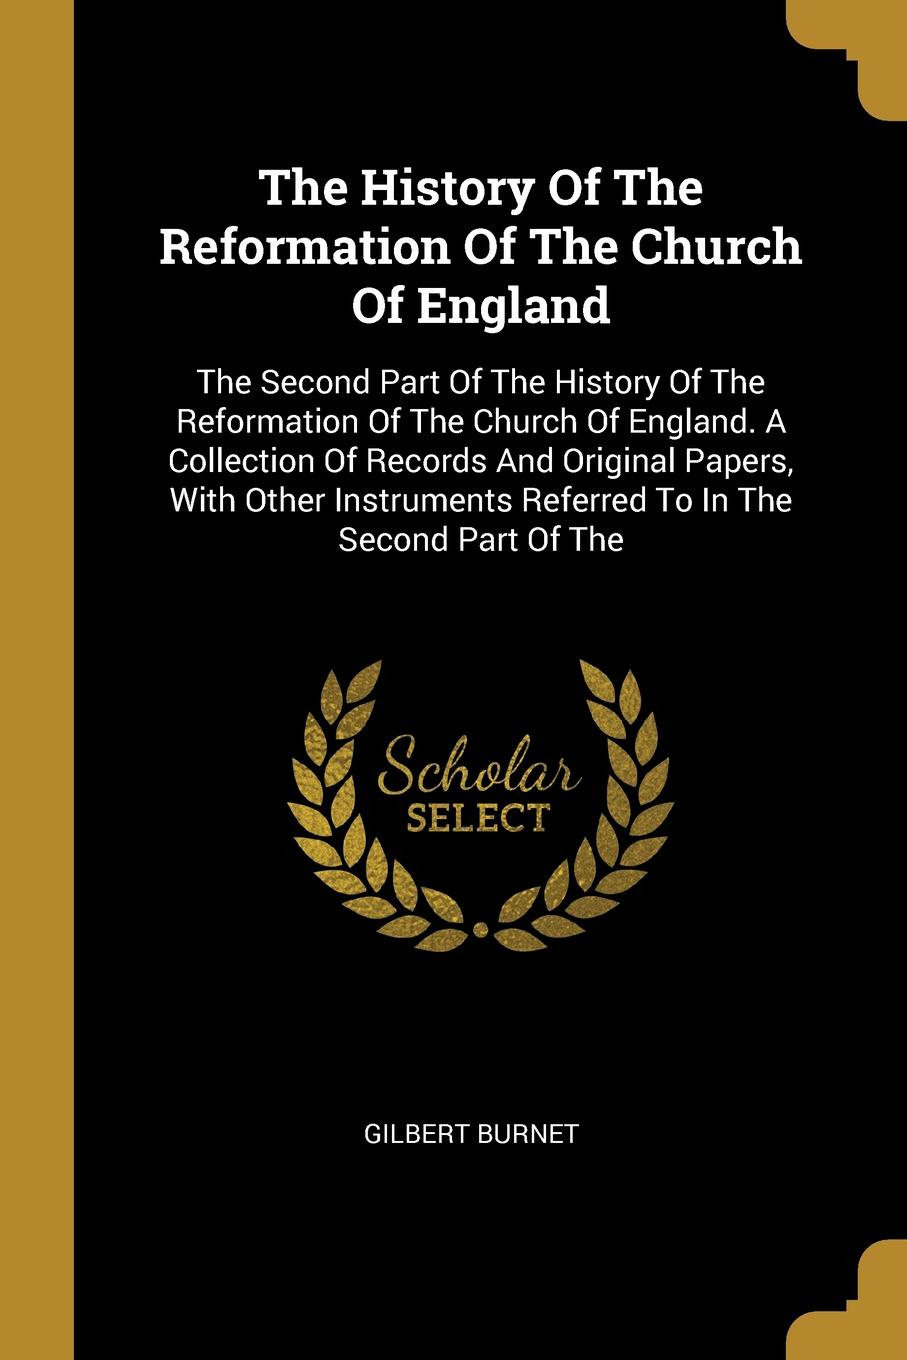 Gilbert Burnet The History Of The Reformation Of The Church Of England. The Second Part Of The History Of The Reformation Of The Church Of England. A Collection Of Records And Original Papers, With Other Instruments Referred To In The Second Part Of The aubrey lackington moore lectures and papers on the history of the reformation in england and on the